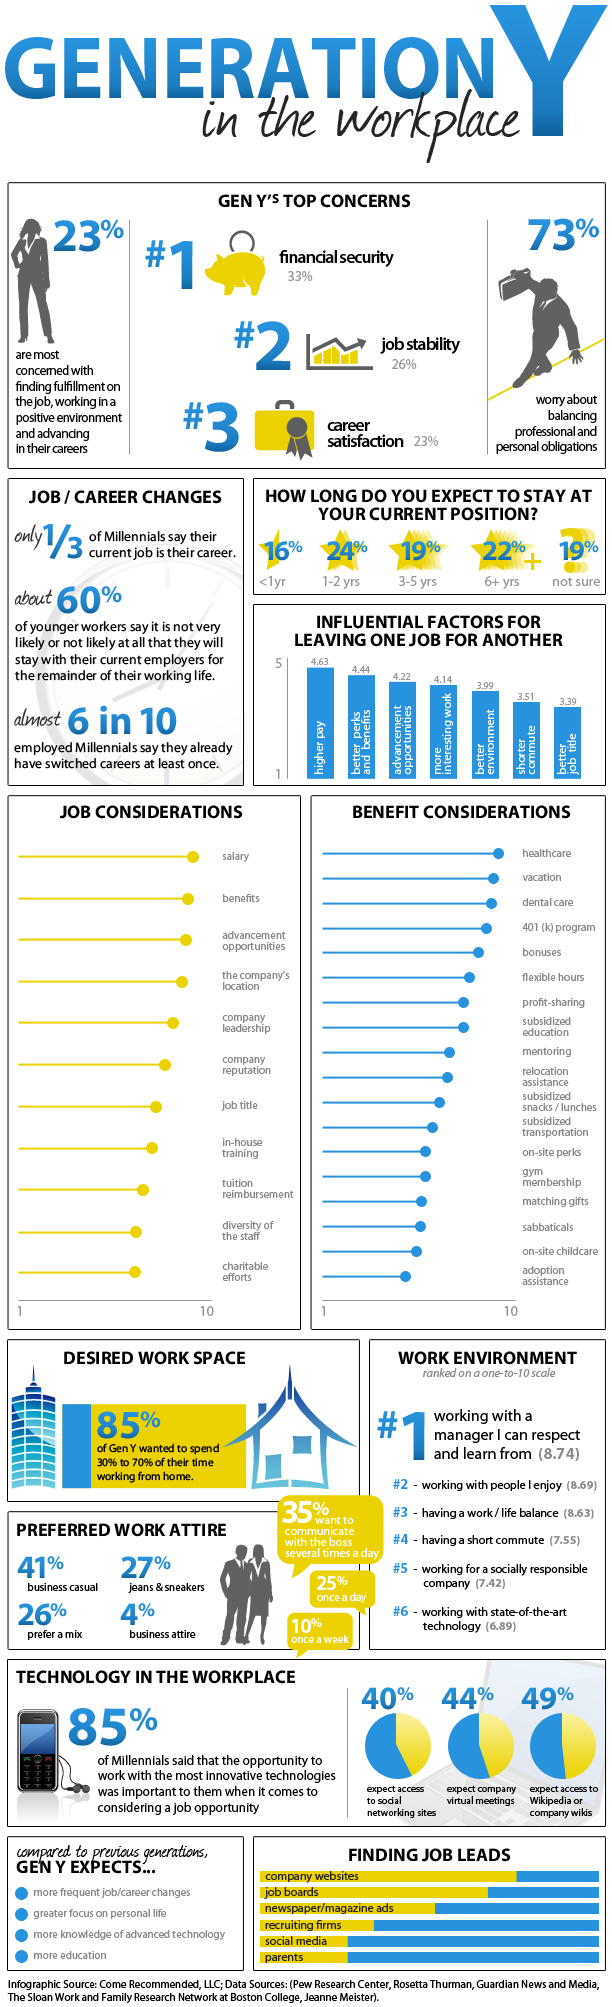 millennials gen y in the workplace workplace generational differences